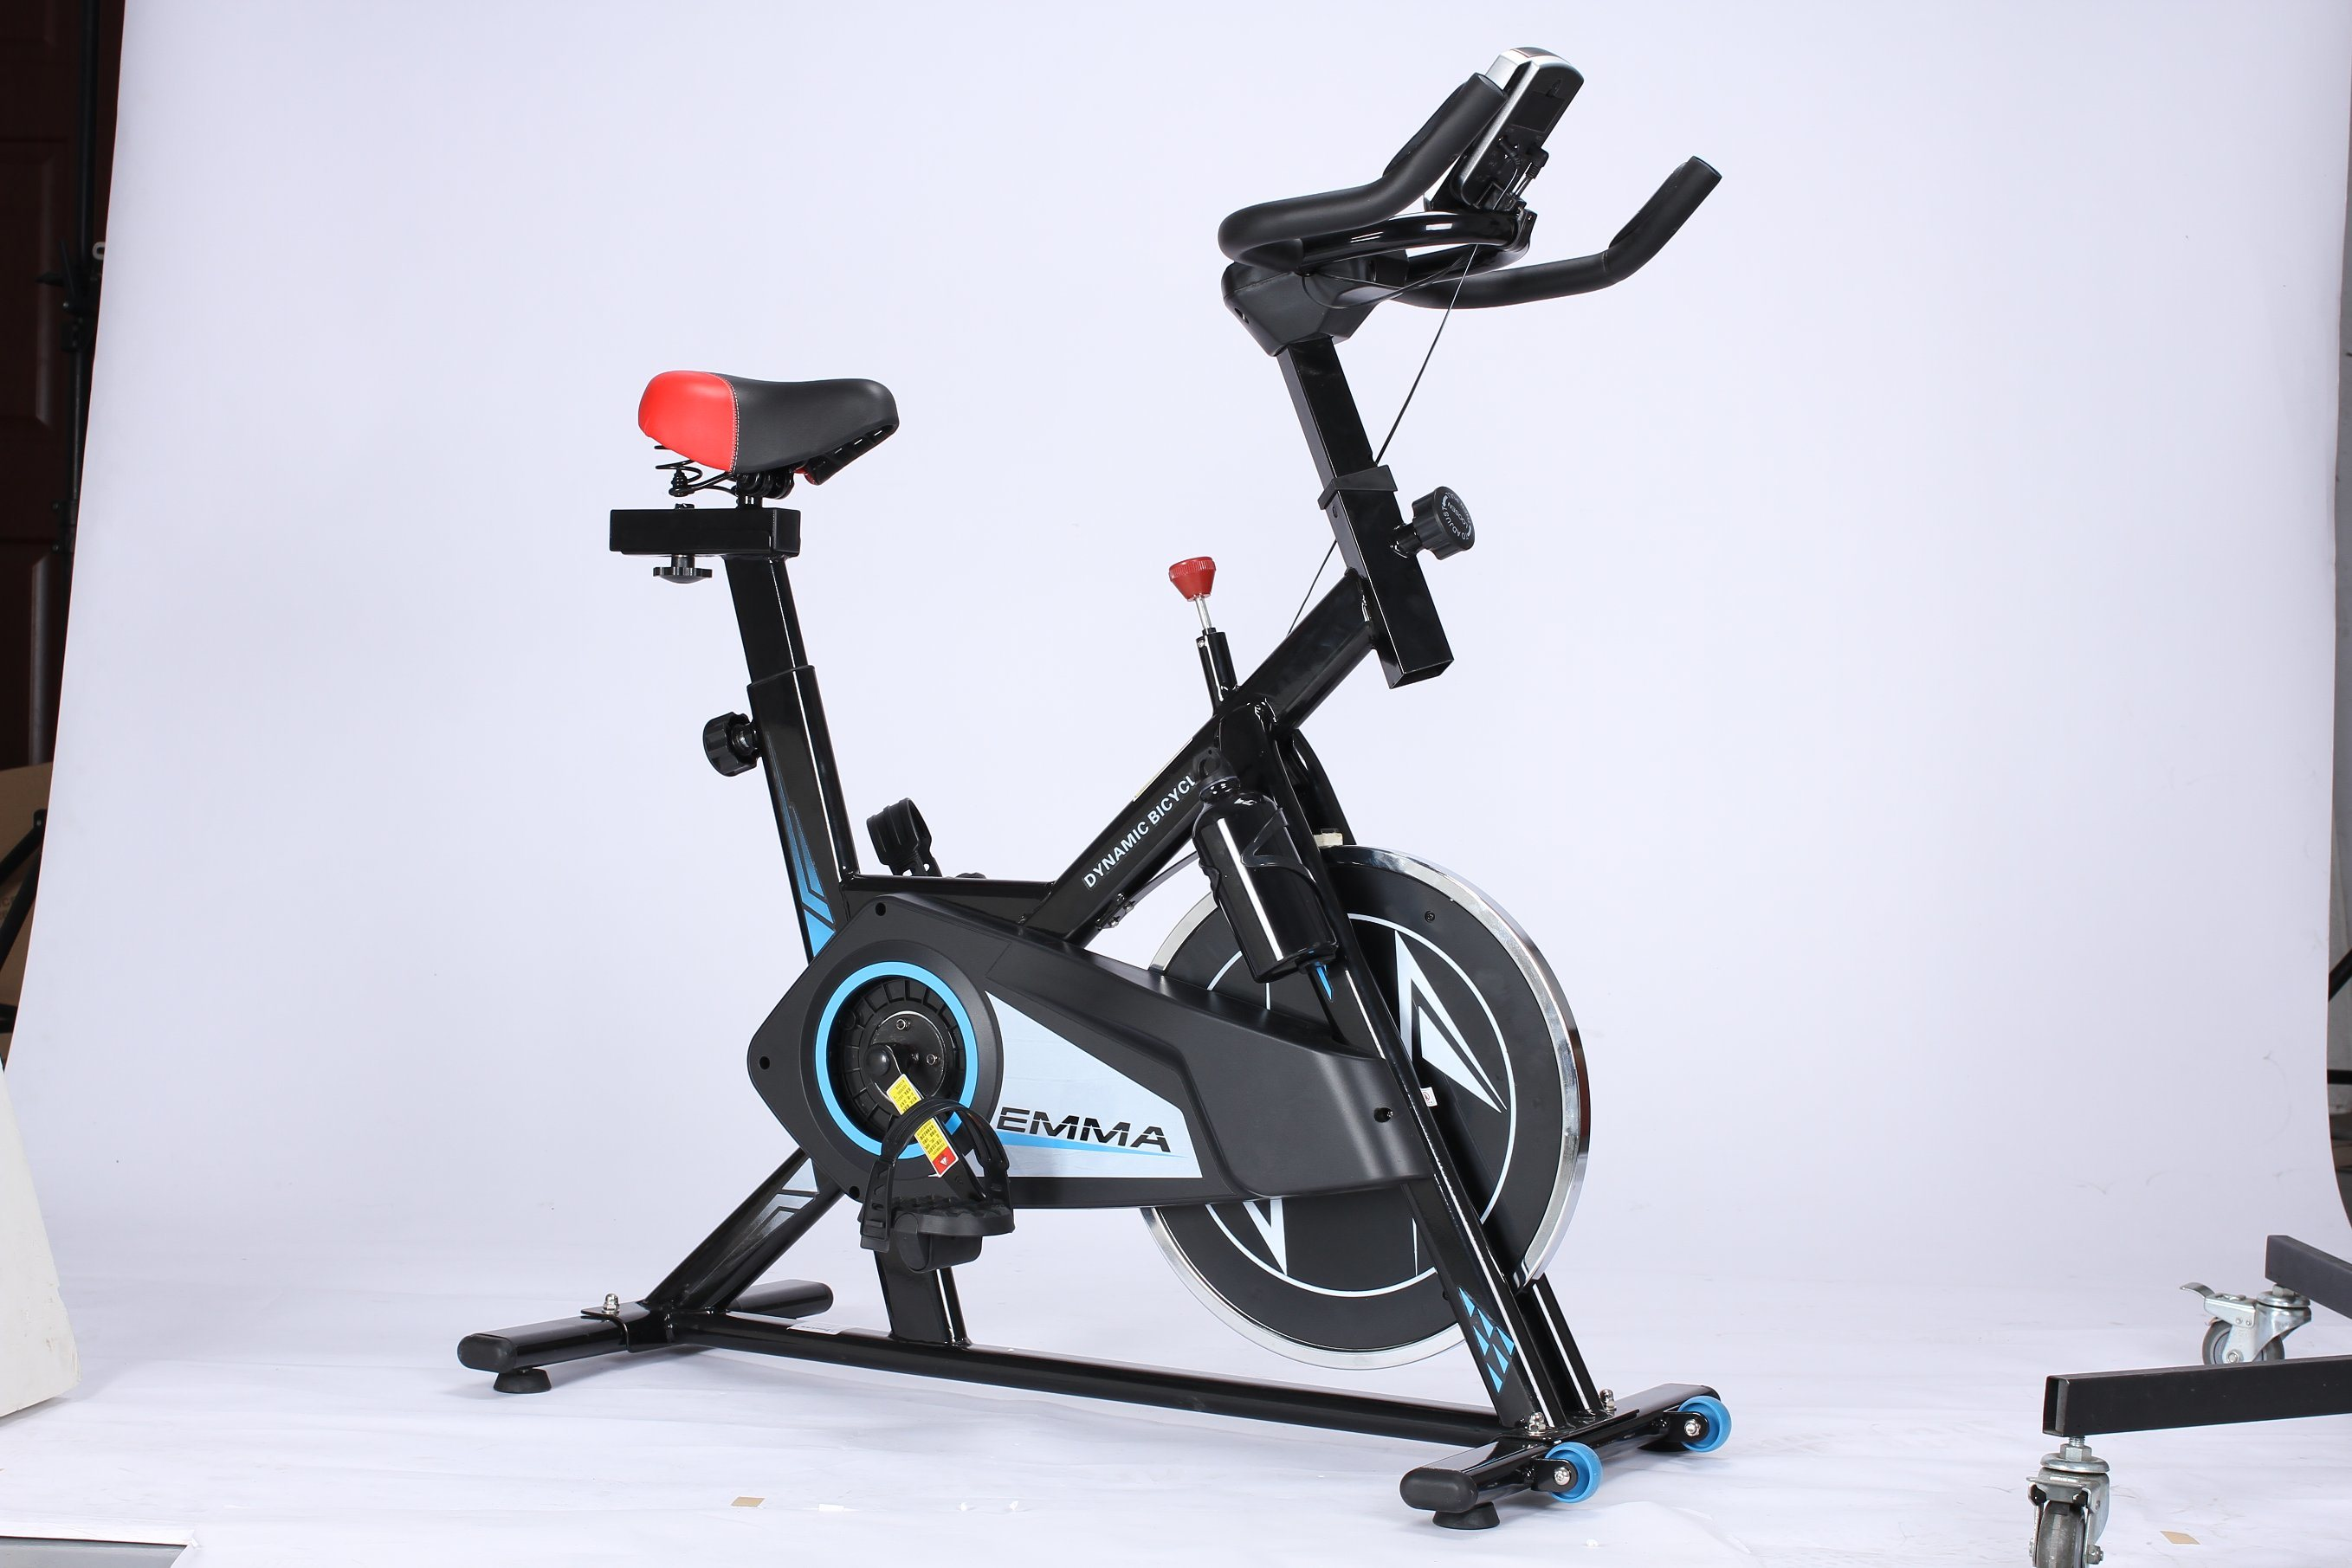 e3137da2ef9 China indoor fitness cycle bike exercise bike with computer monitor jpg  2716x1811 Exercise bike with computer